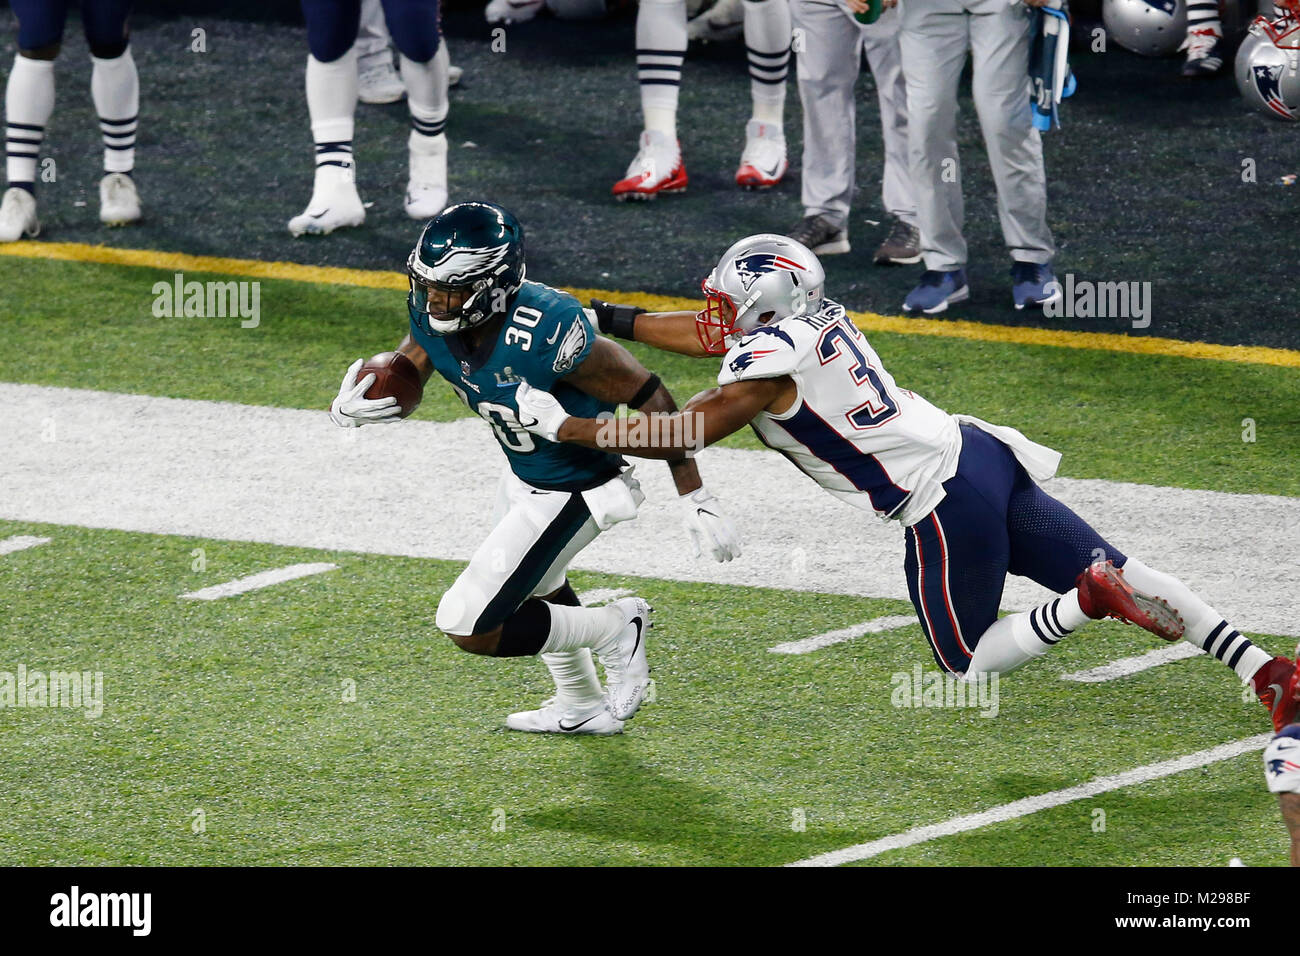 February 04, 2018 Philadelphia Eagles running back Corey Clement (30) carries the ball and breaks a tackle during - Stock Image